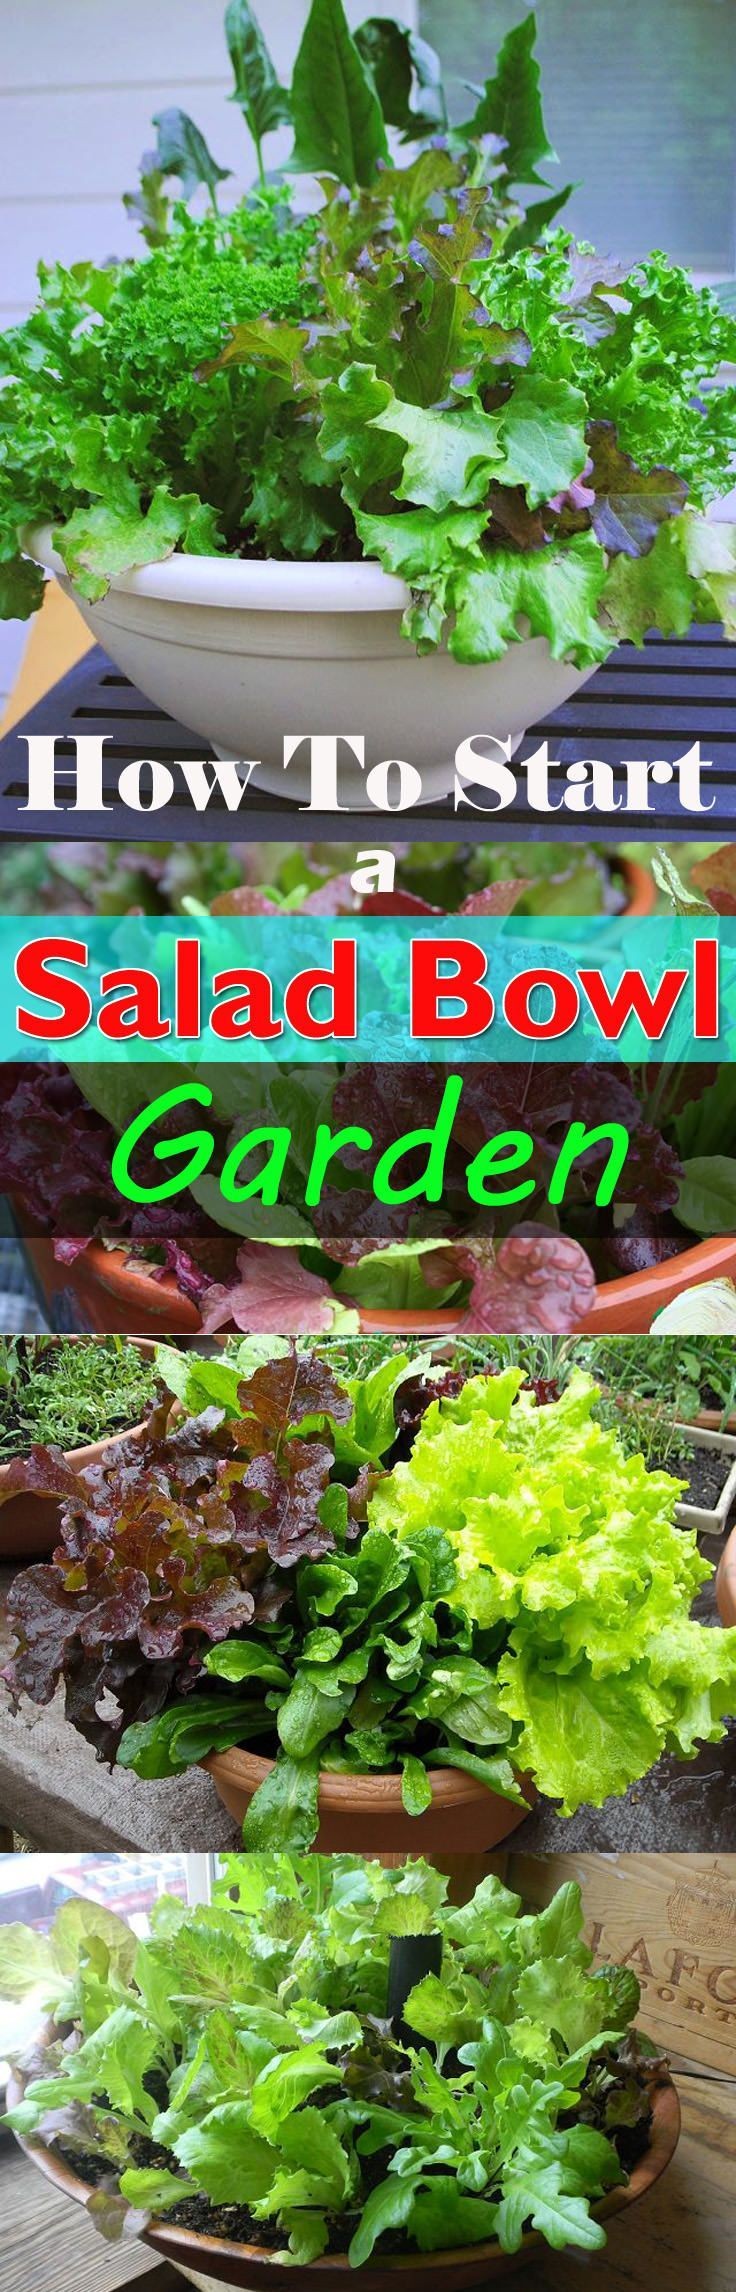 Home produce garden - How To Start A Salad Bowl Garden Gardening At Homevegetable